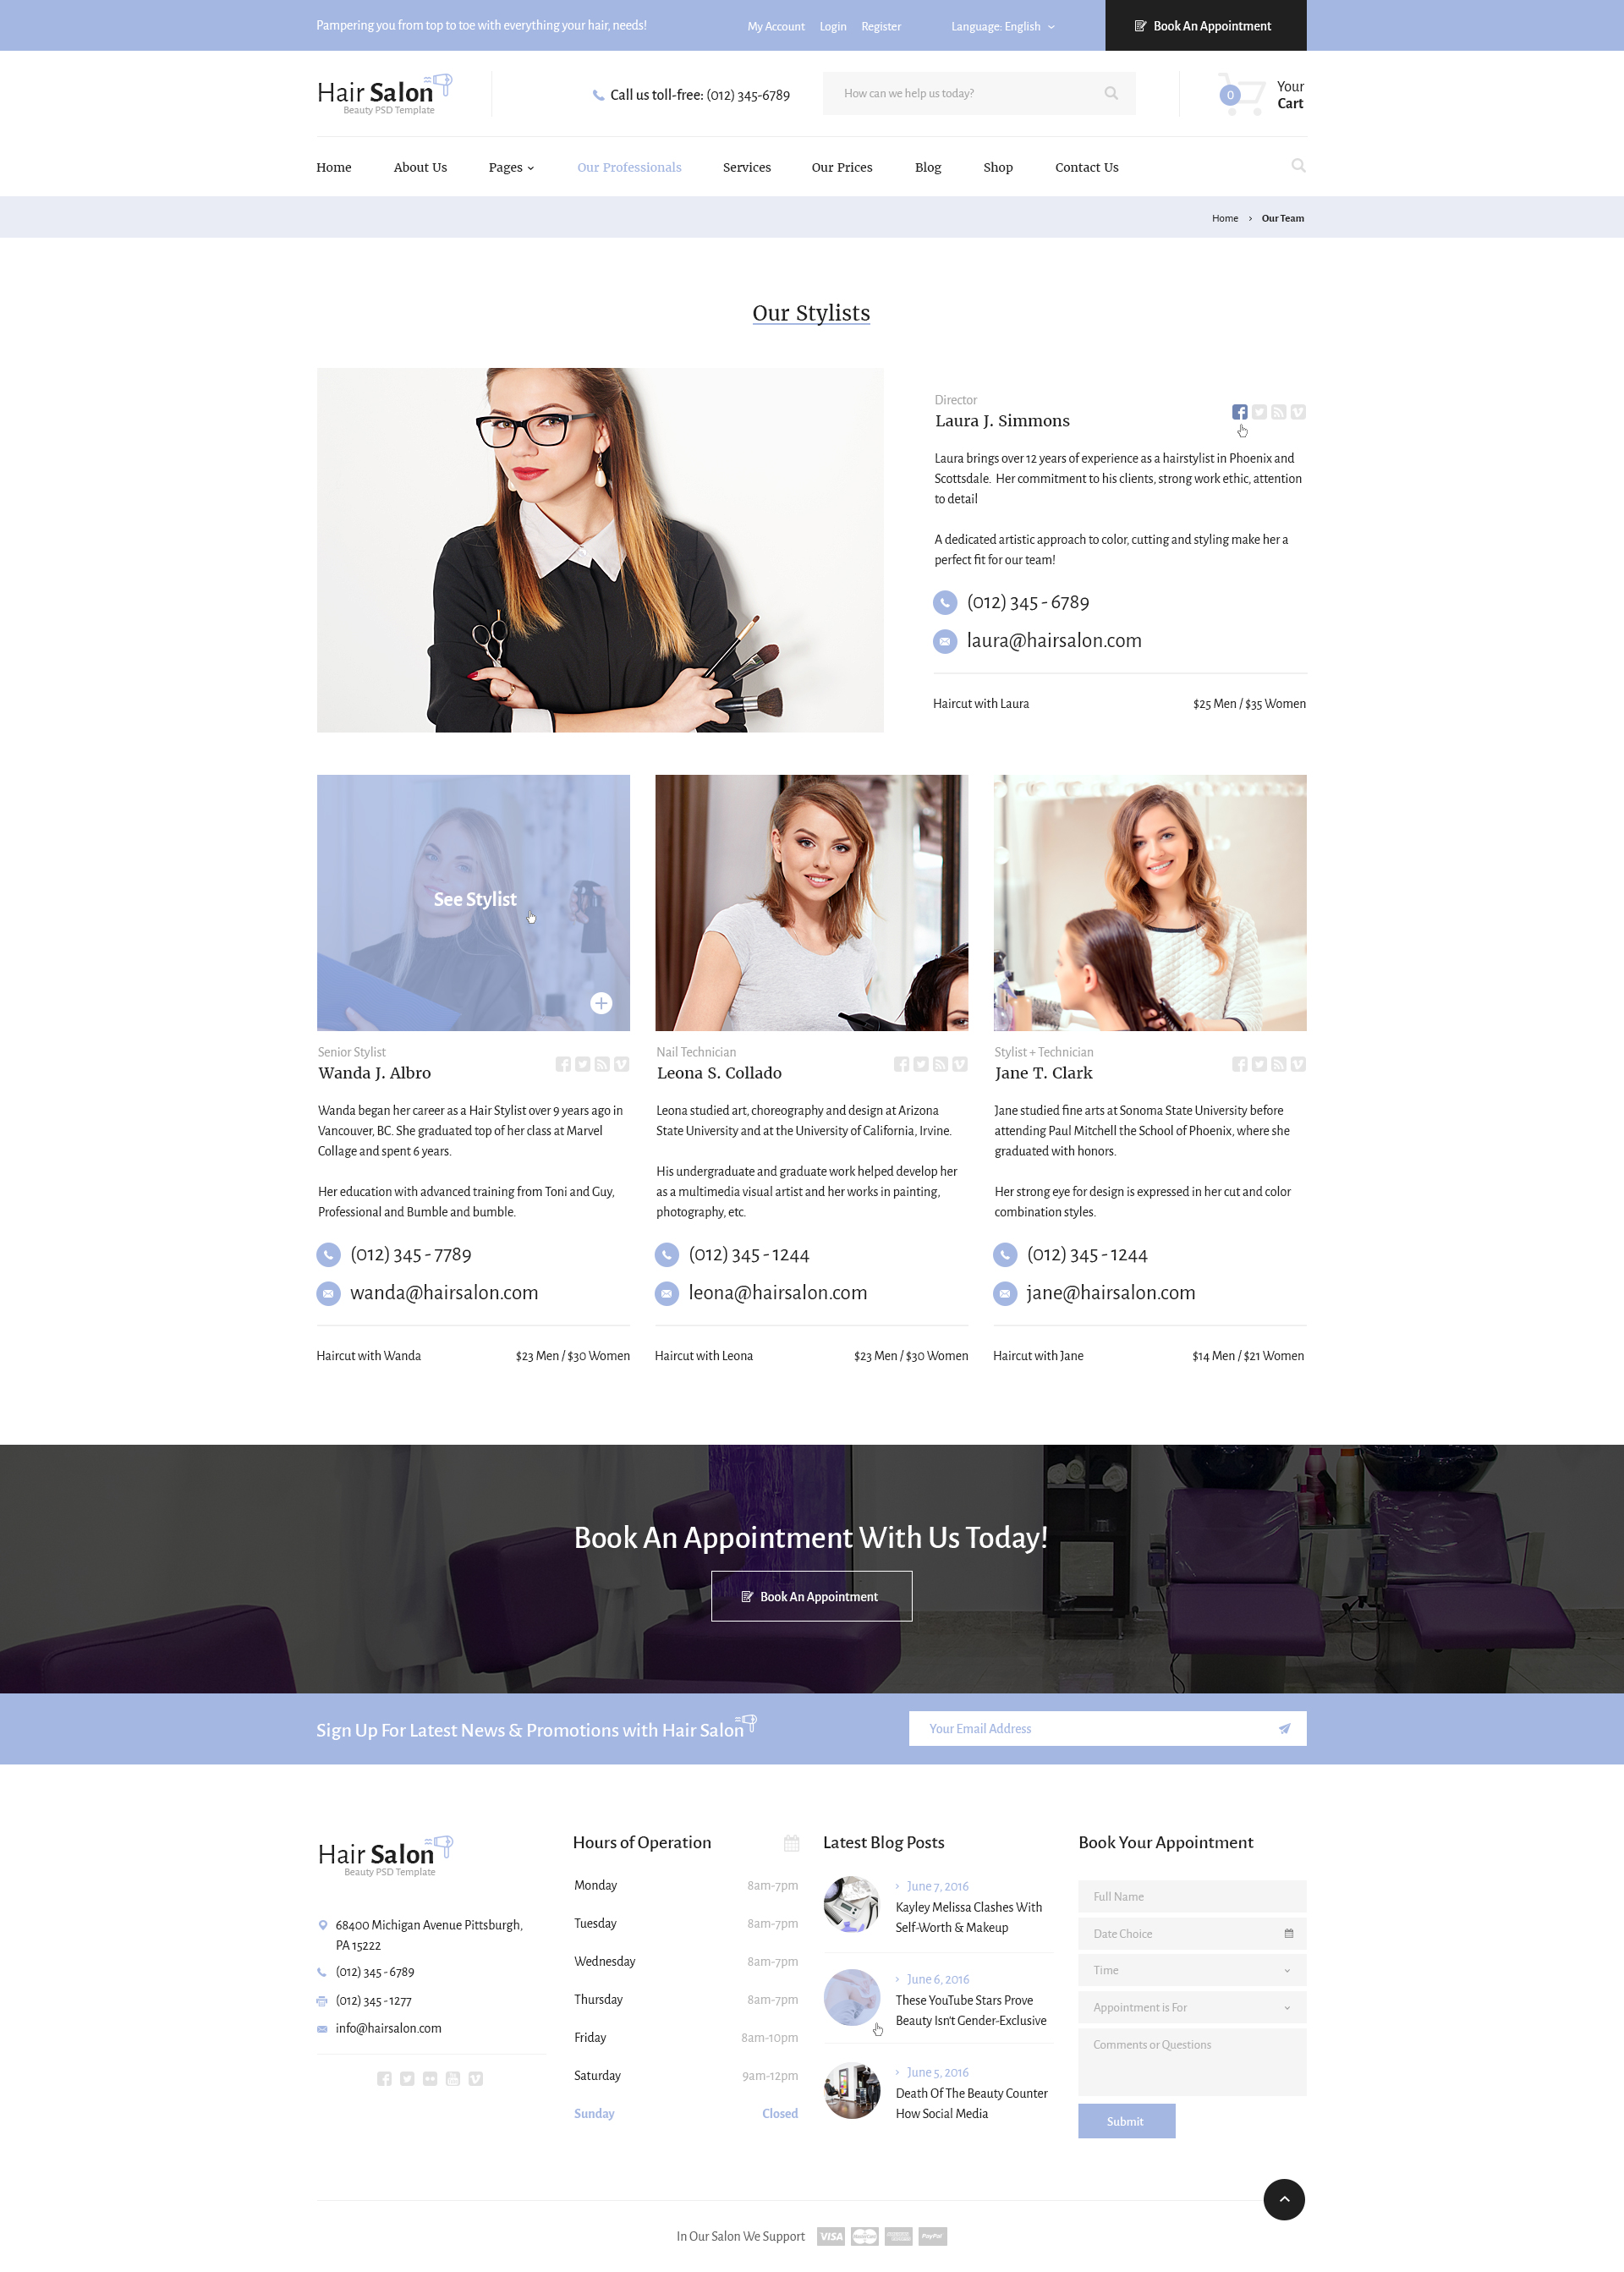 Charming 010 Editor Templates Thin 1300 Resume Government Samples Selection Criteria Shaped 18th Birthday Invitation Templates 1st Job Resume Template Old 2014 Printable Calendar Template Green24 Hour Timeline Template Hair Salon   Beauty PSD Template By Diadea3007 | ThemeForest